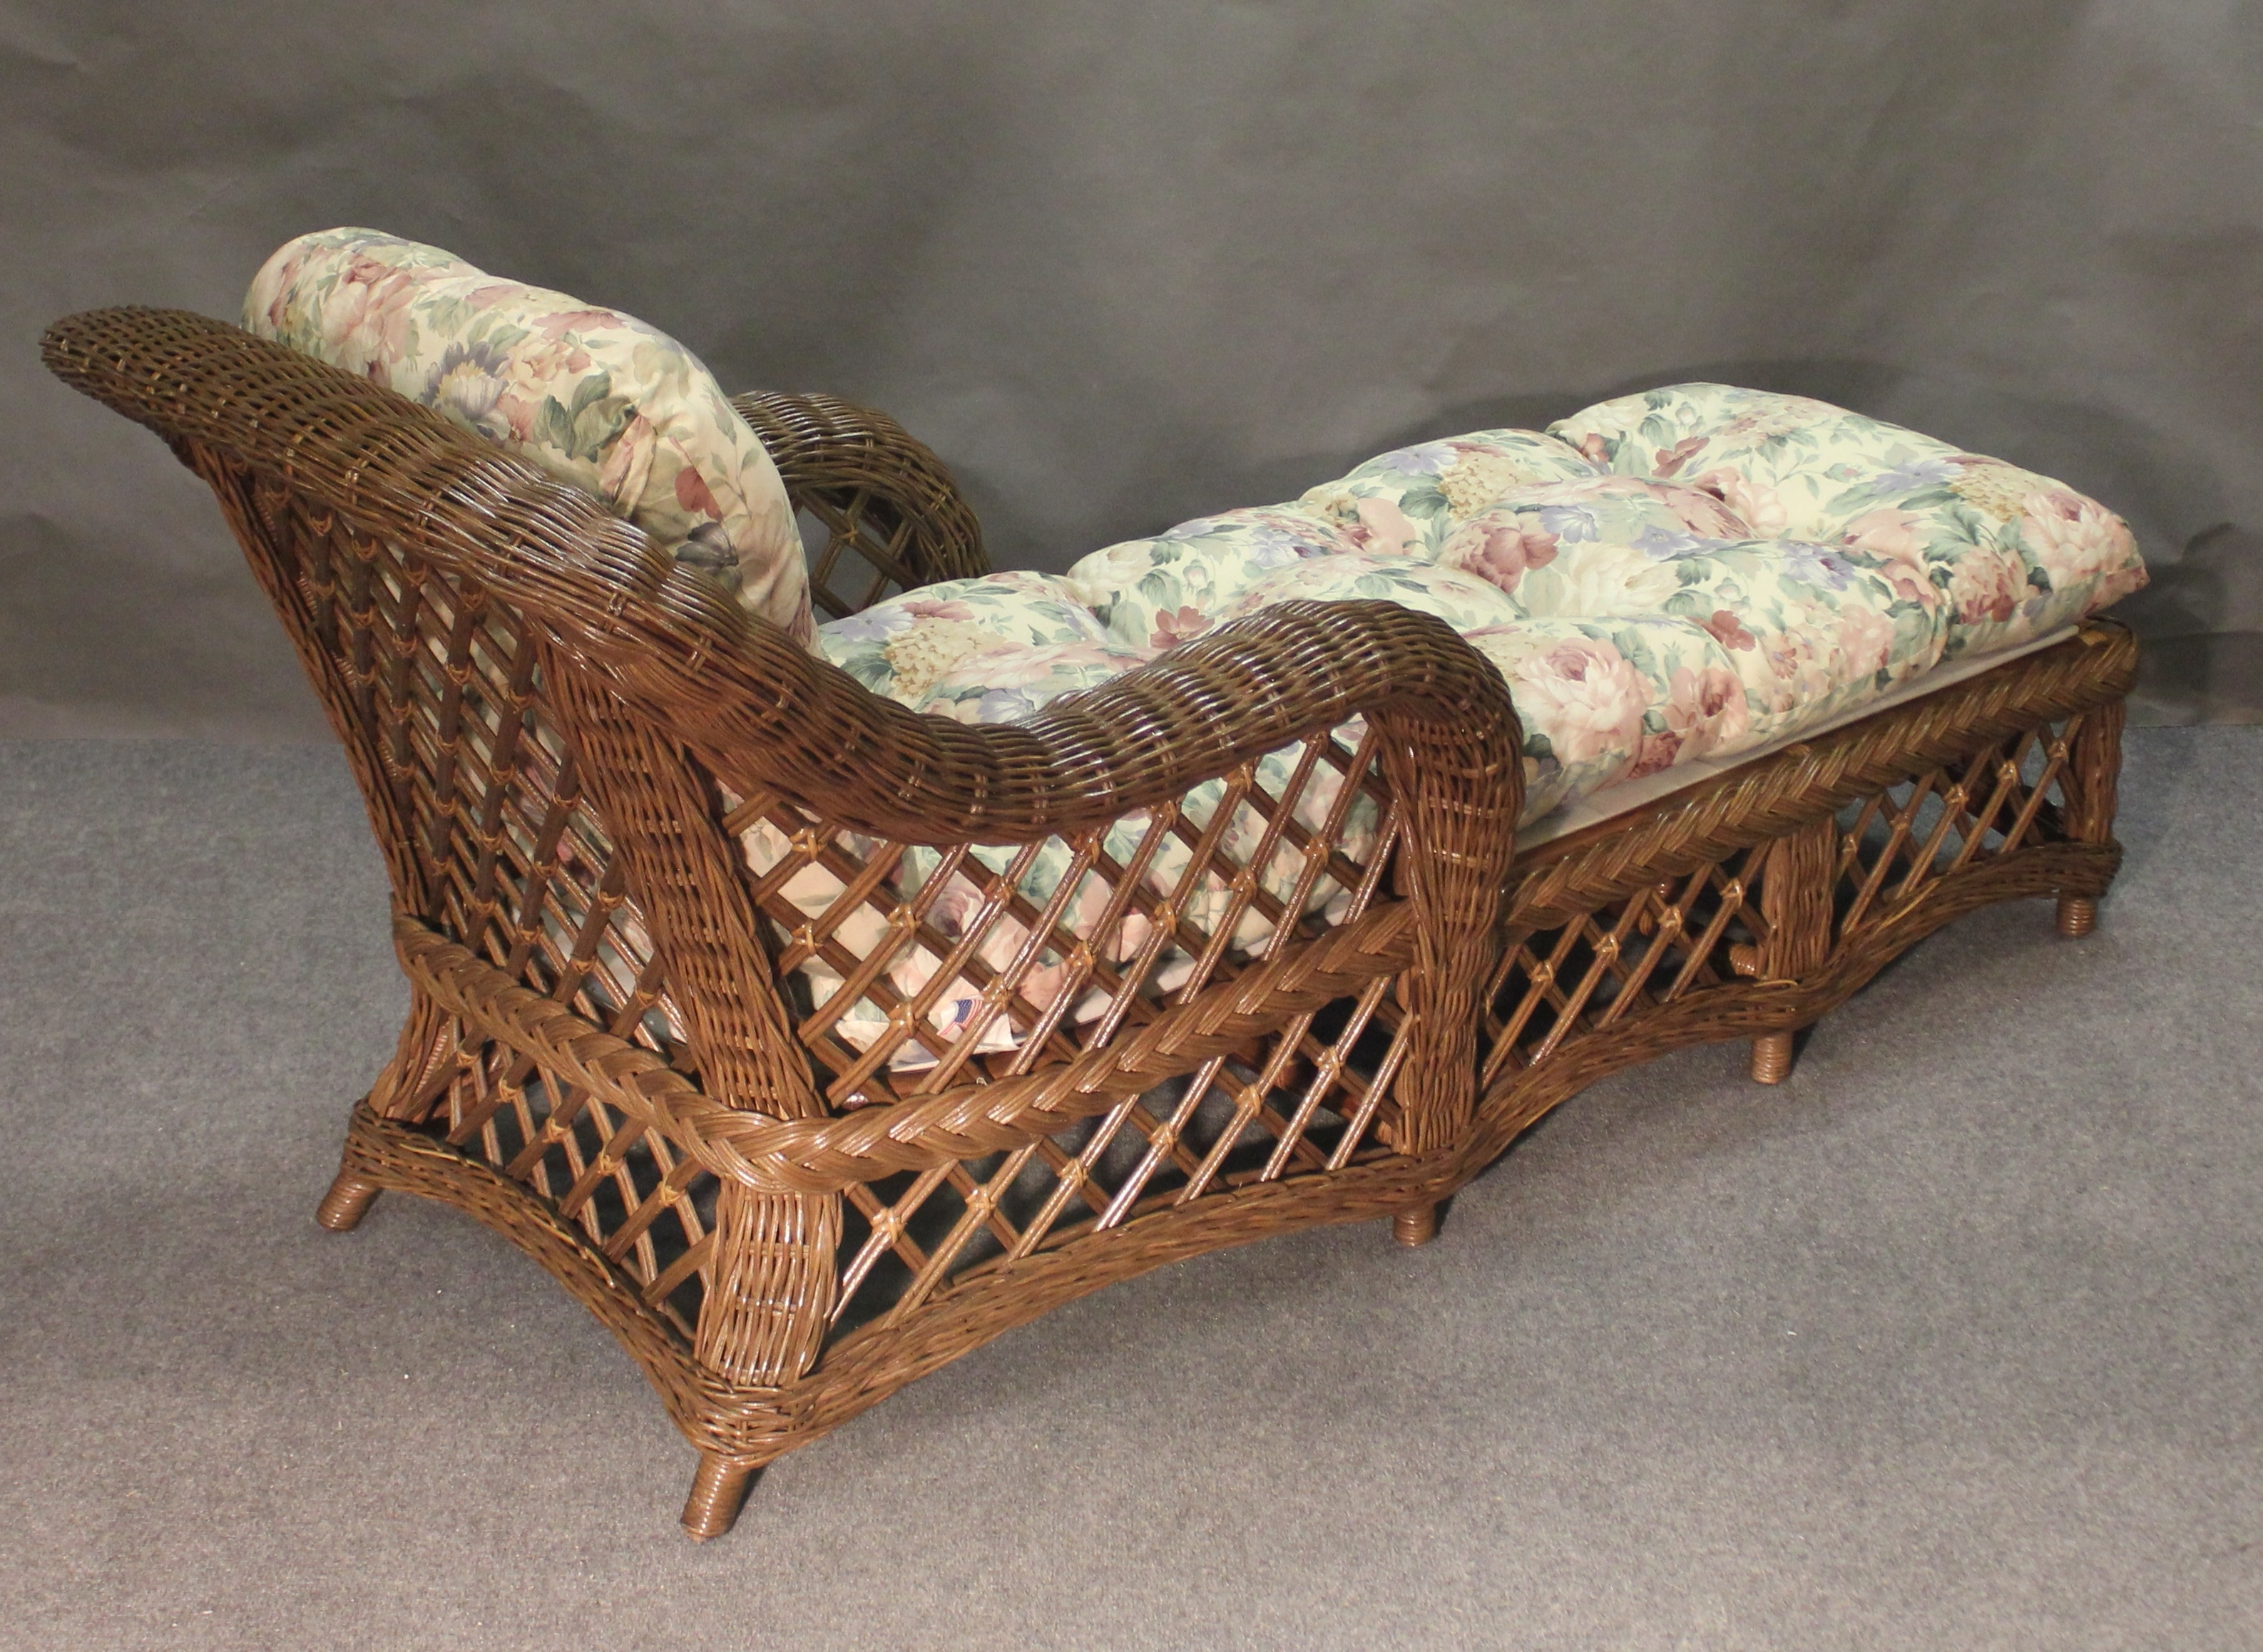 Outdoor Wicker Chaise Lounges Pertaining To Widely Used Cape Cod Wicker Chaise Lounge, All About Wicker (View 9 of 15)